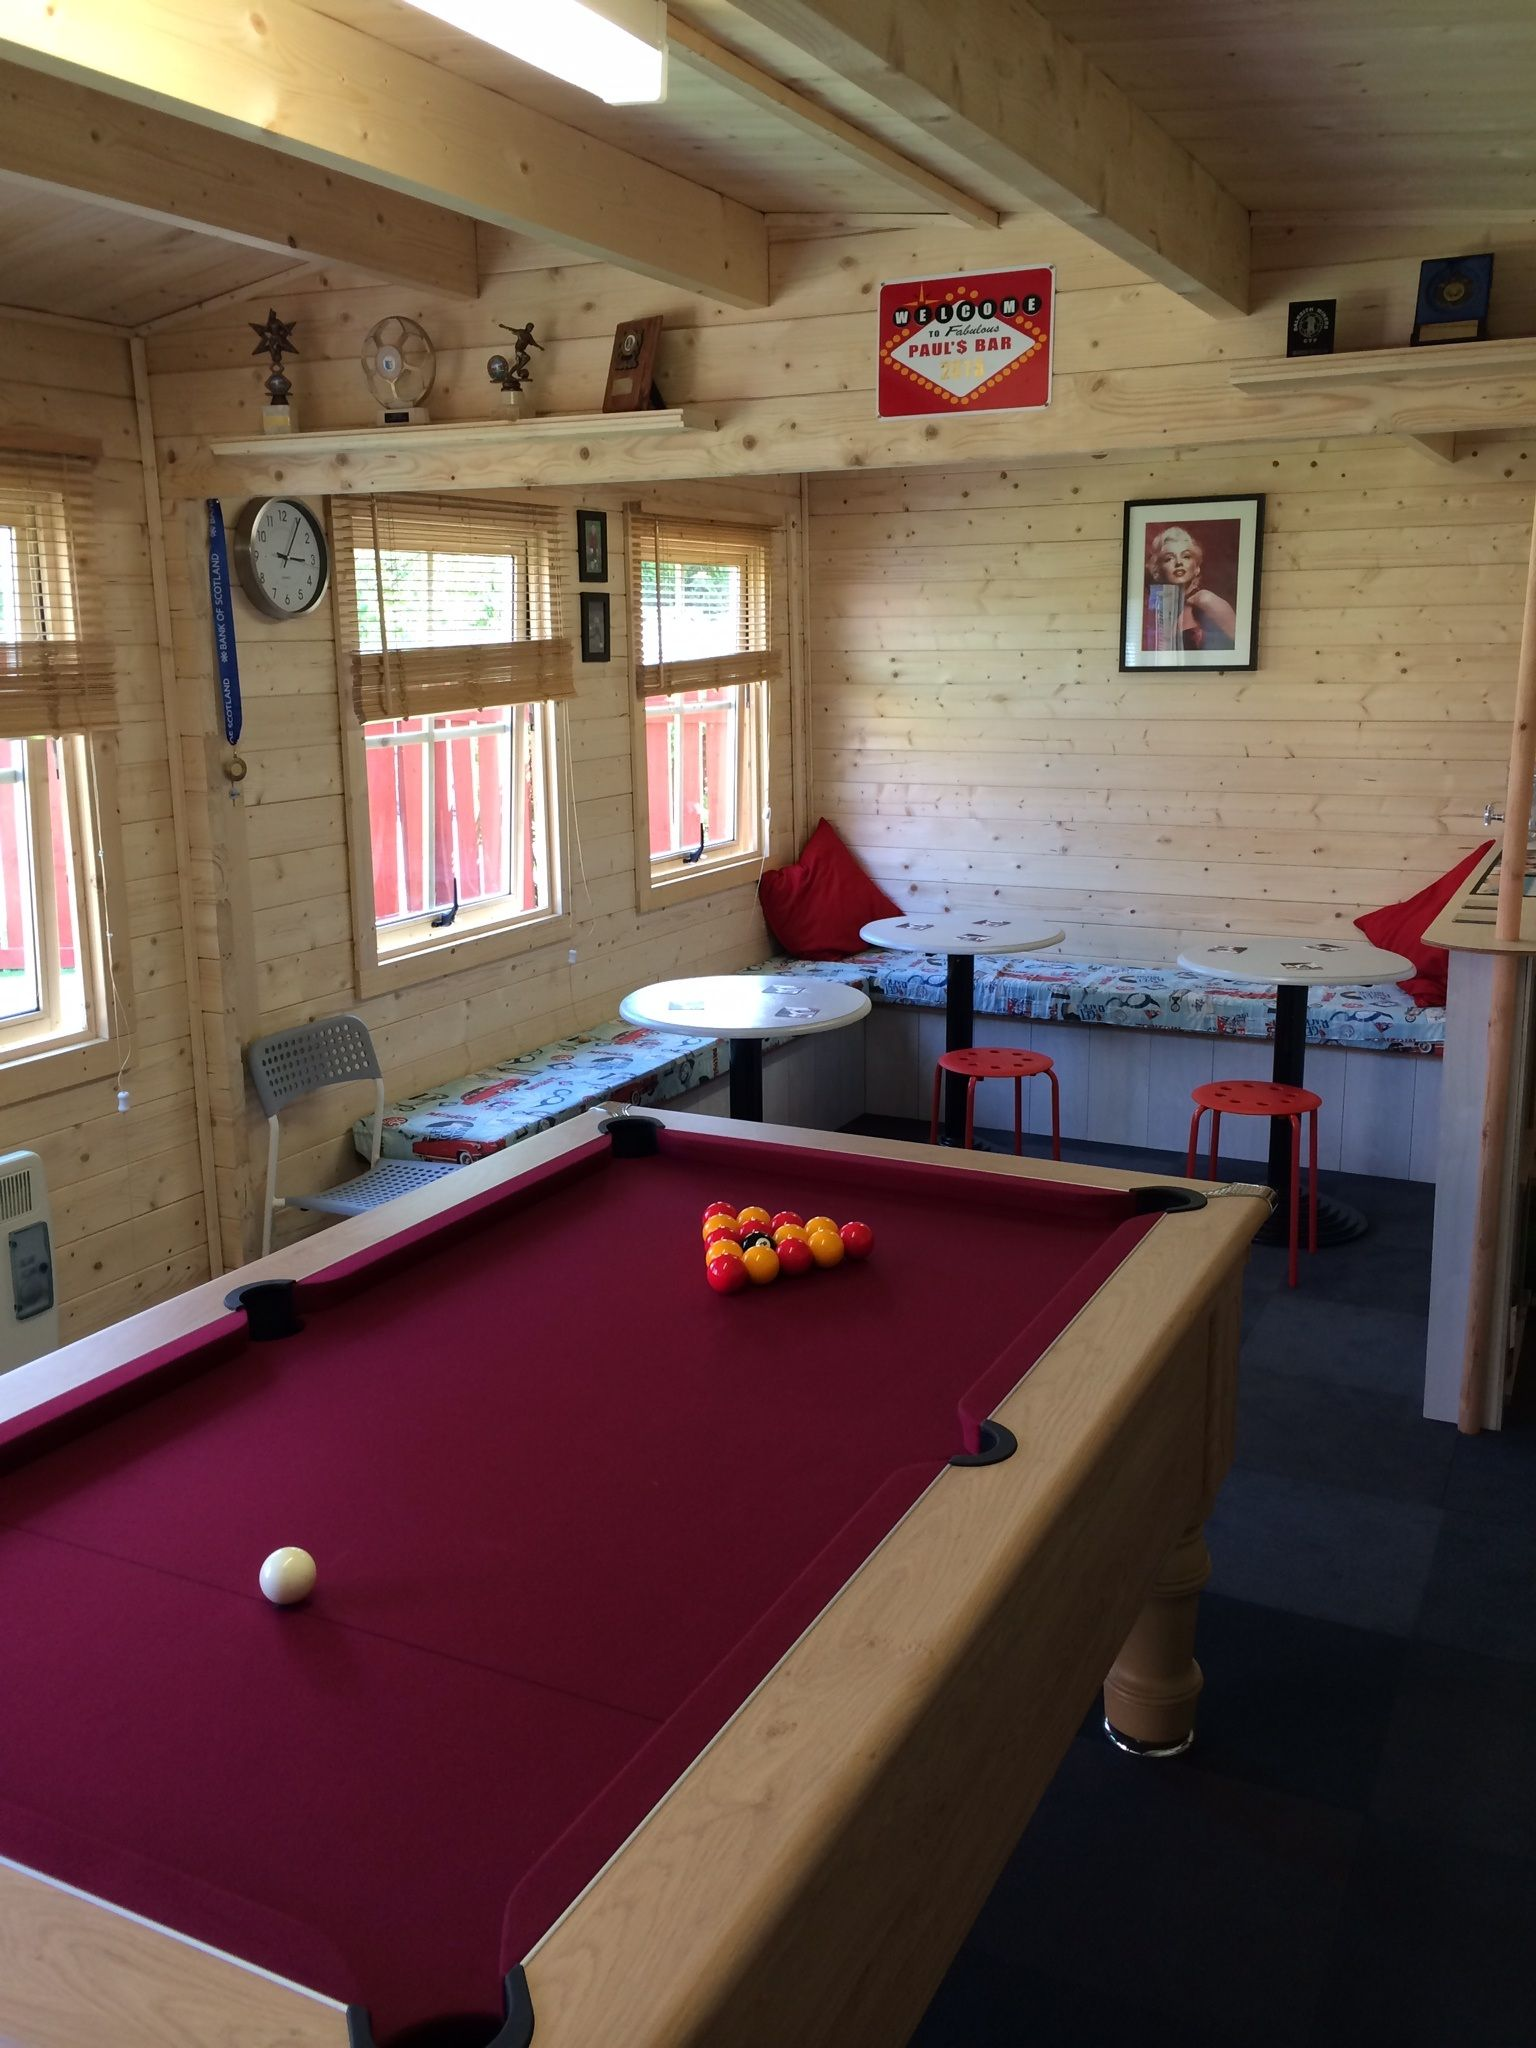 Fantastic Purchase Huge Thanks To Dunster House And Their Sales - Online pool table sales